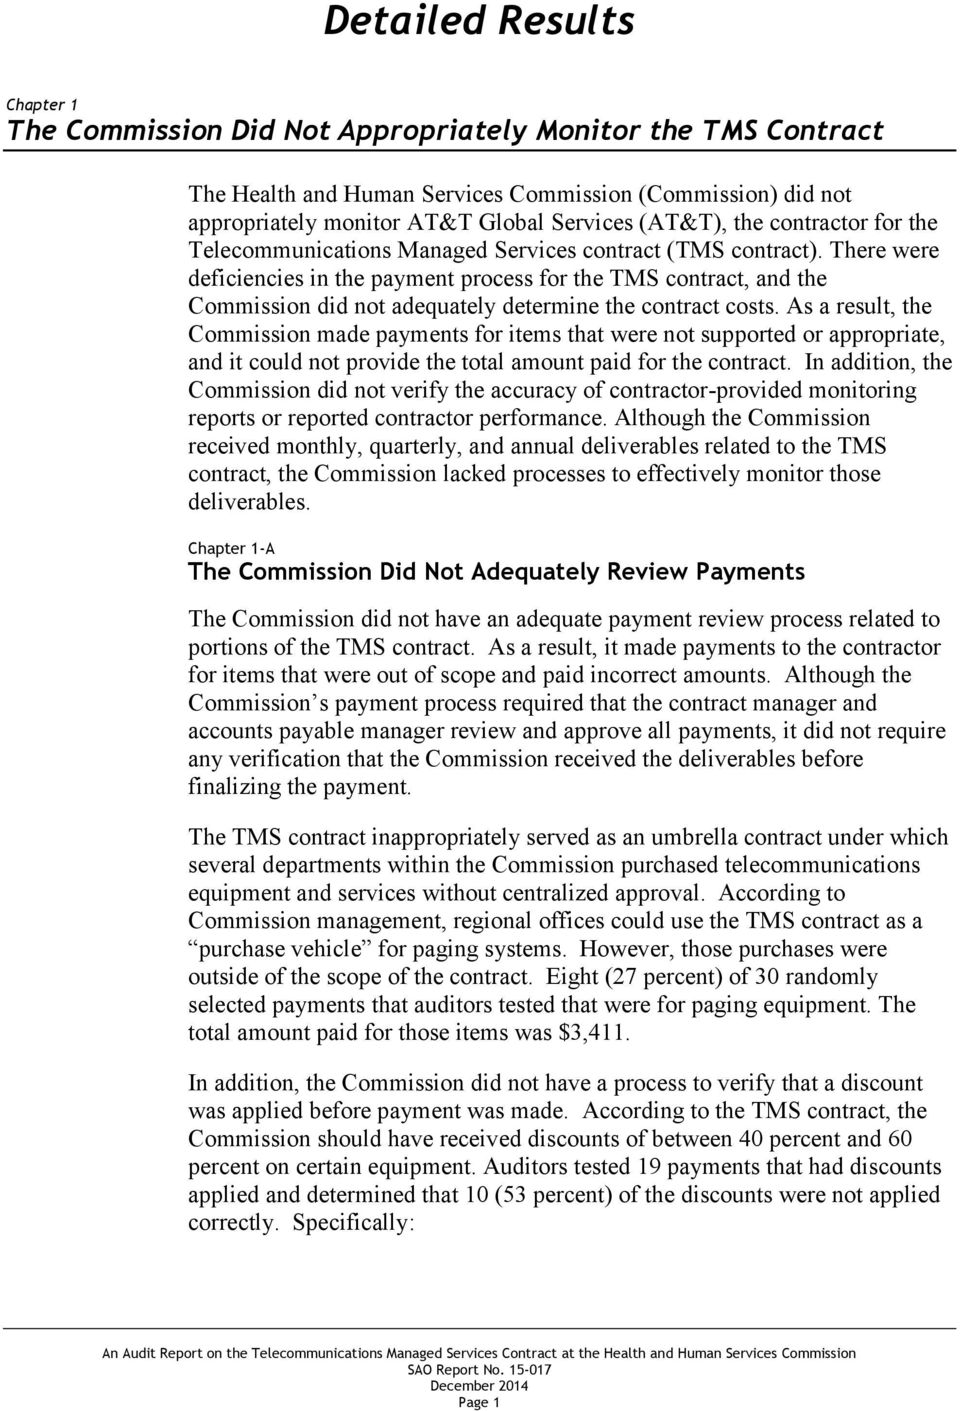 There were deficiencies in the payment process for the TMS contract, and the Commission did not adequately determine the contract costs.